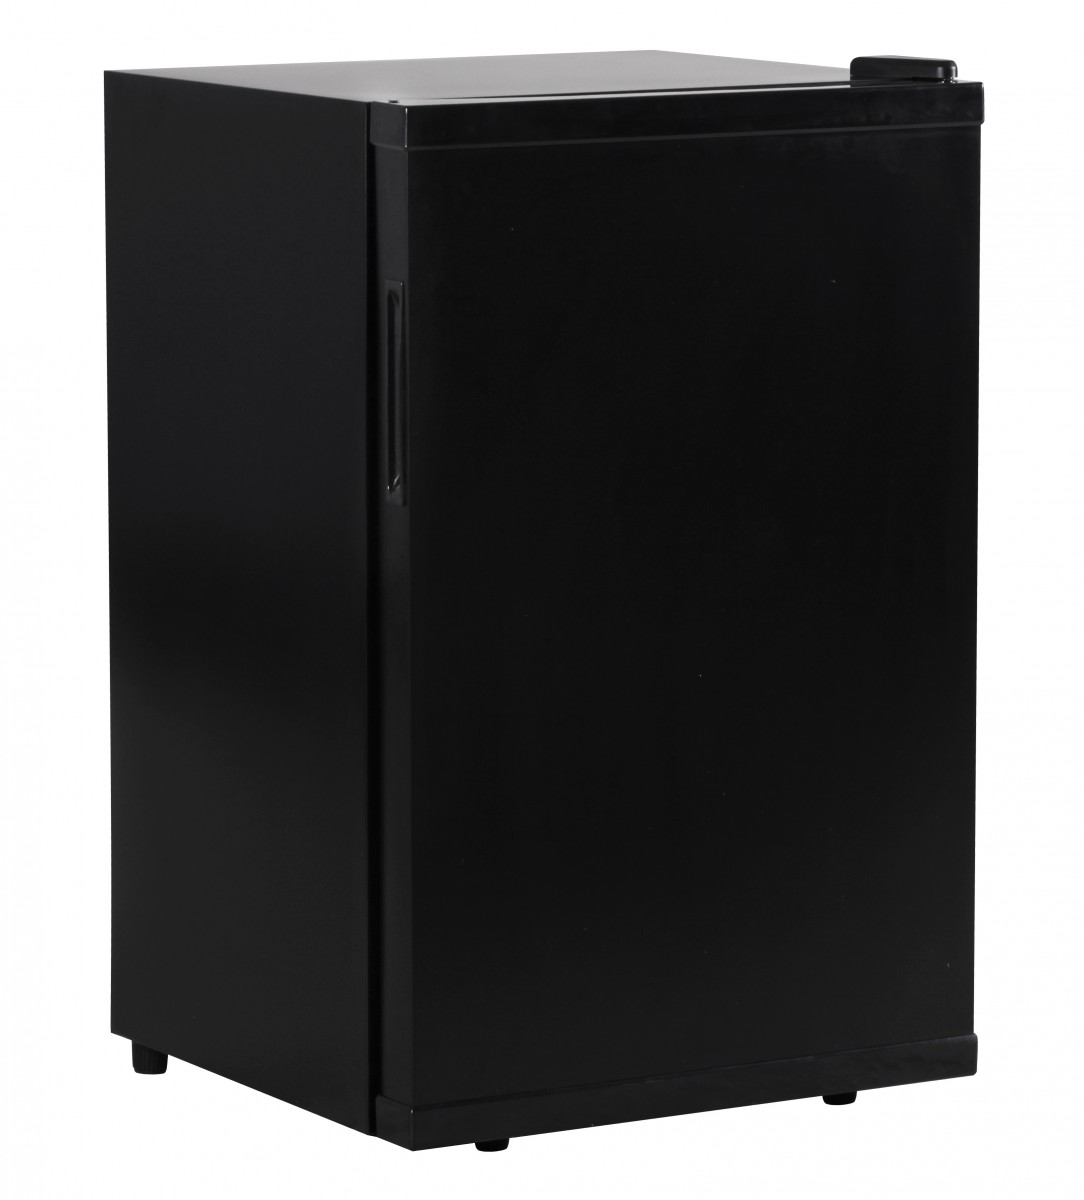 amstyle mini k hlschrank 65 liter minibar schwarz getr nkek hlschrank k hlschrank 5 bis 15. Black Bedroom Furniture Sets. Home Design Ideas